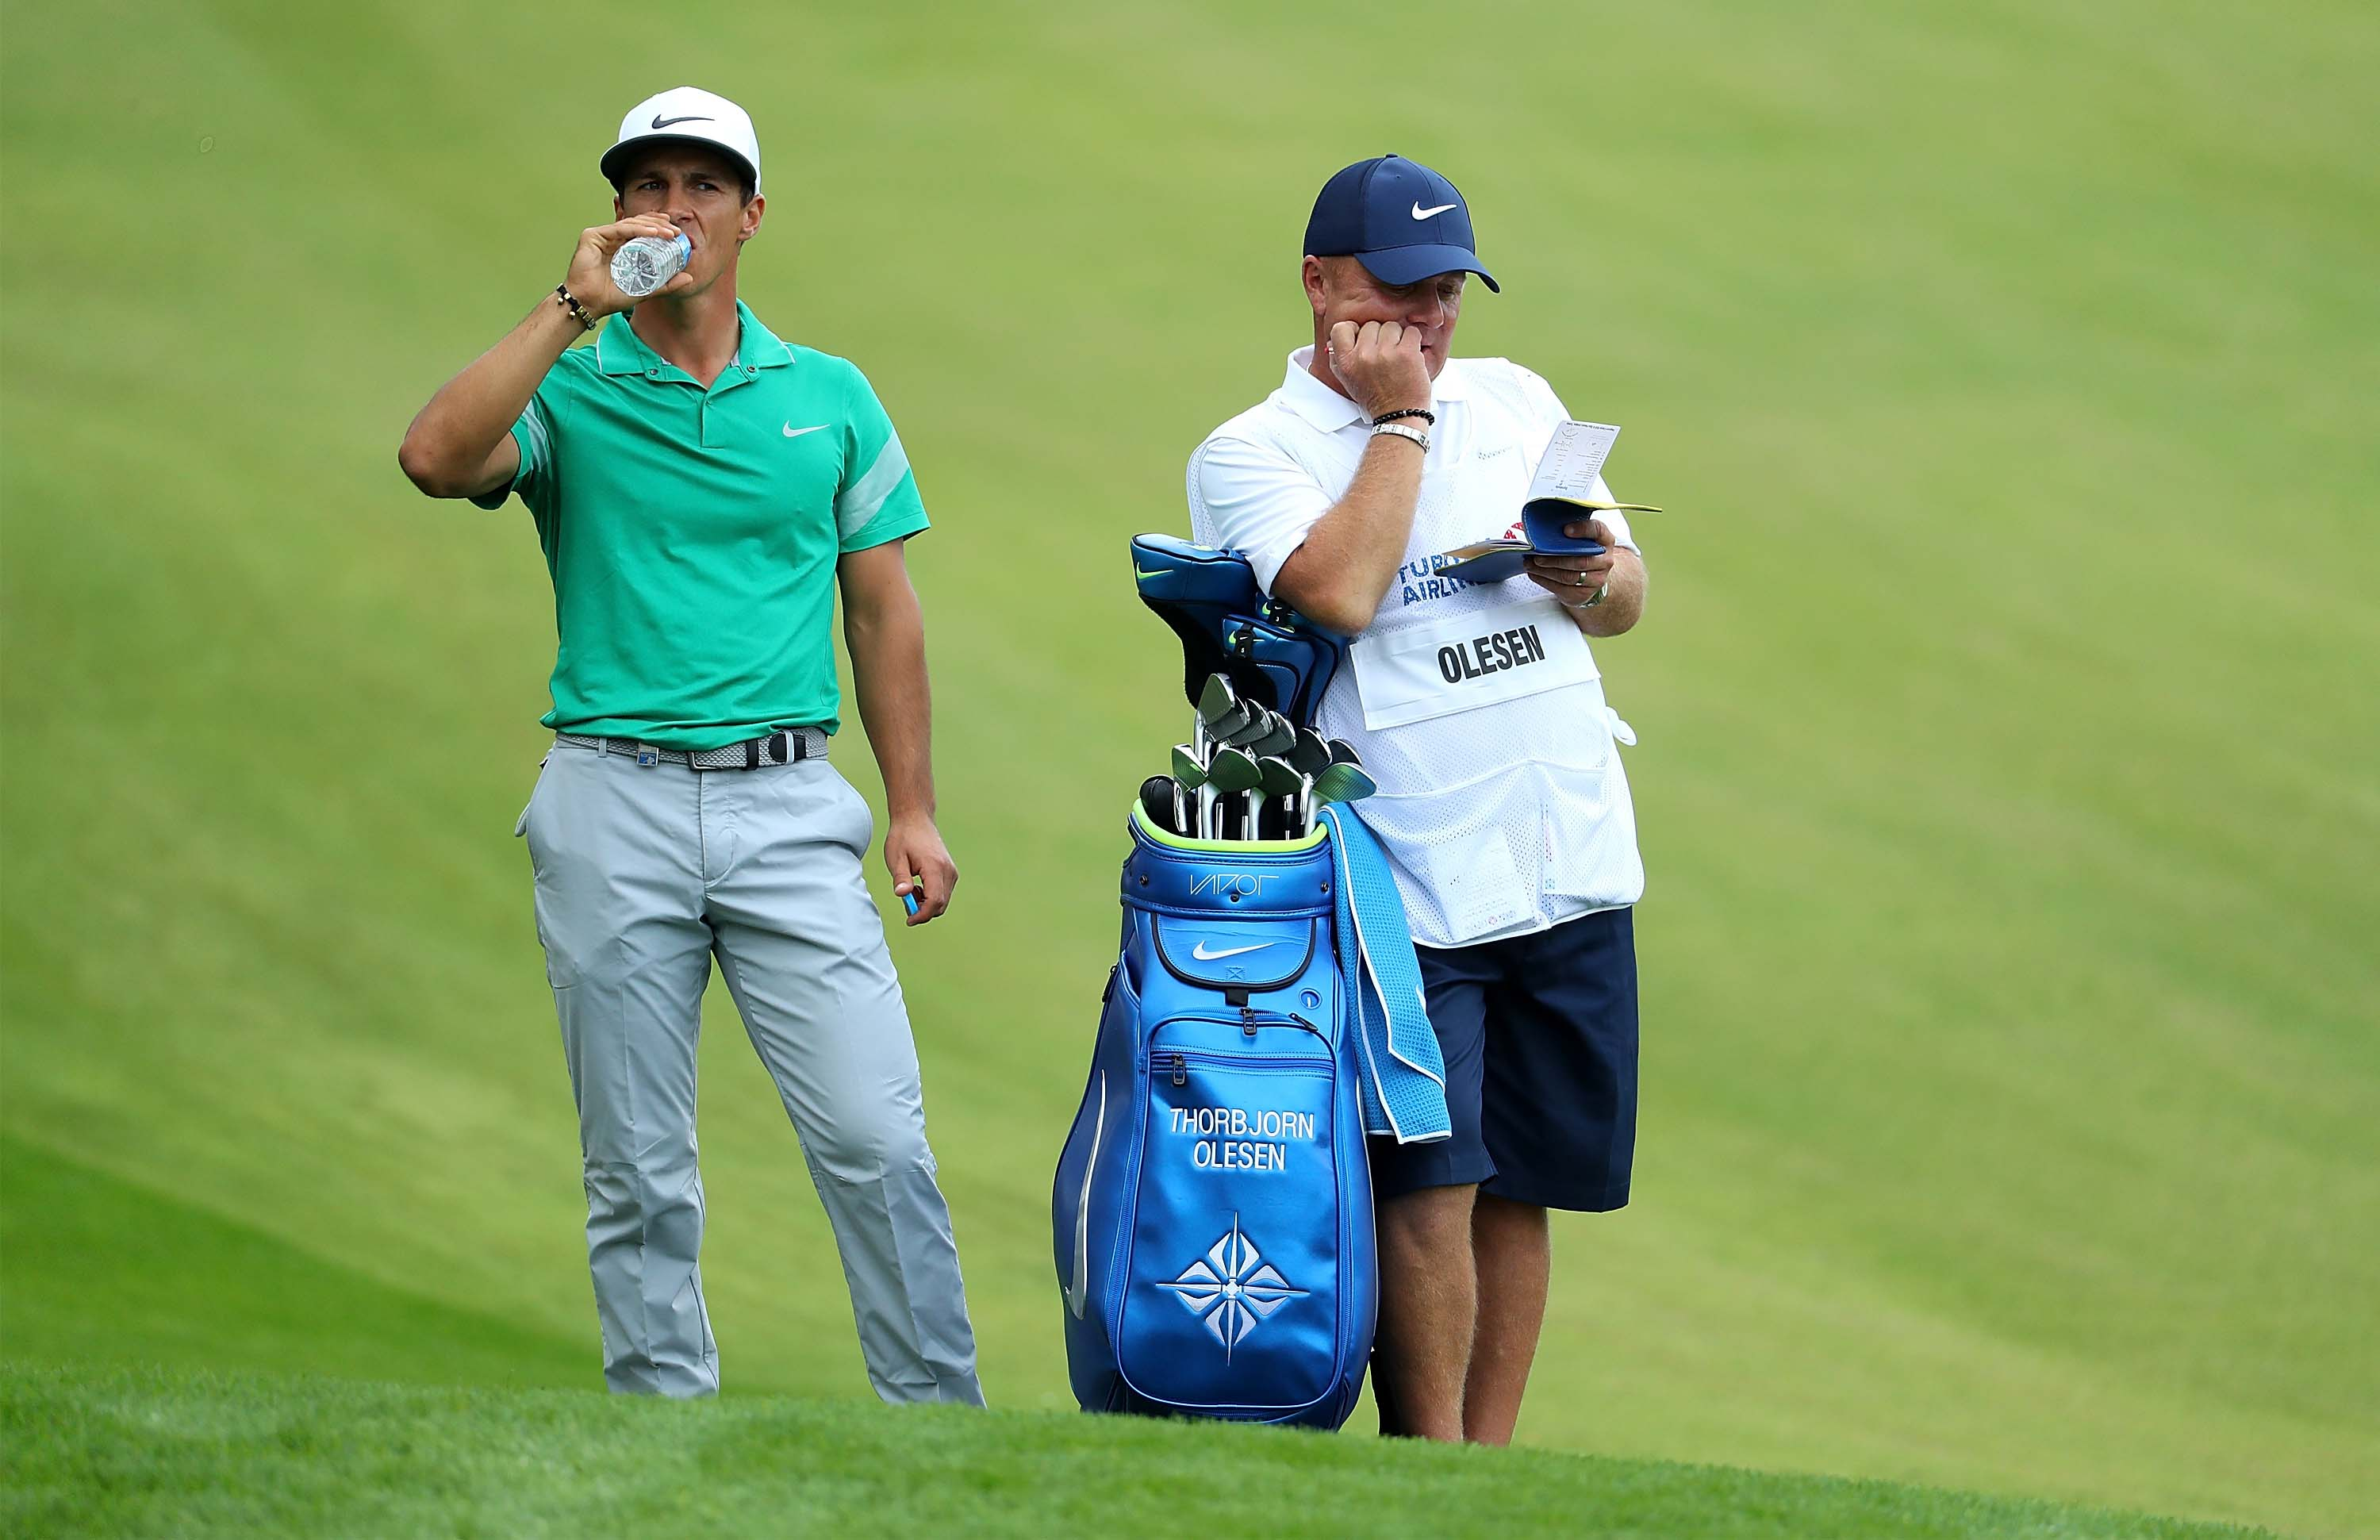 When even your caddie is bored ...